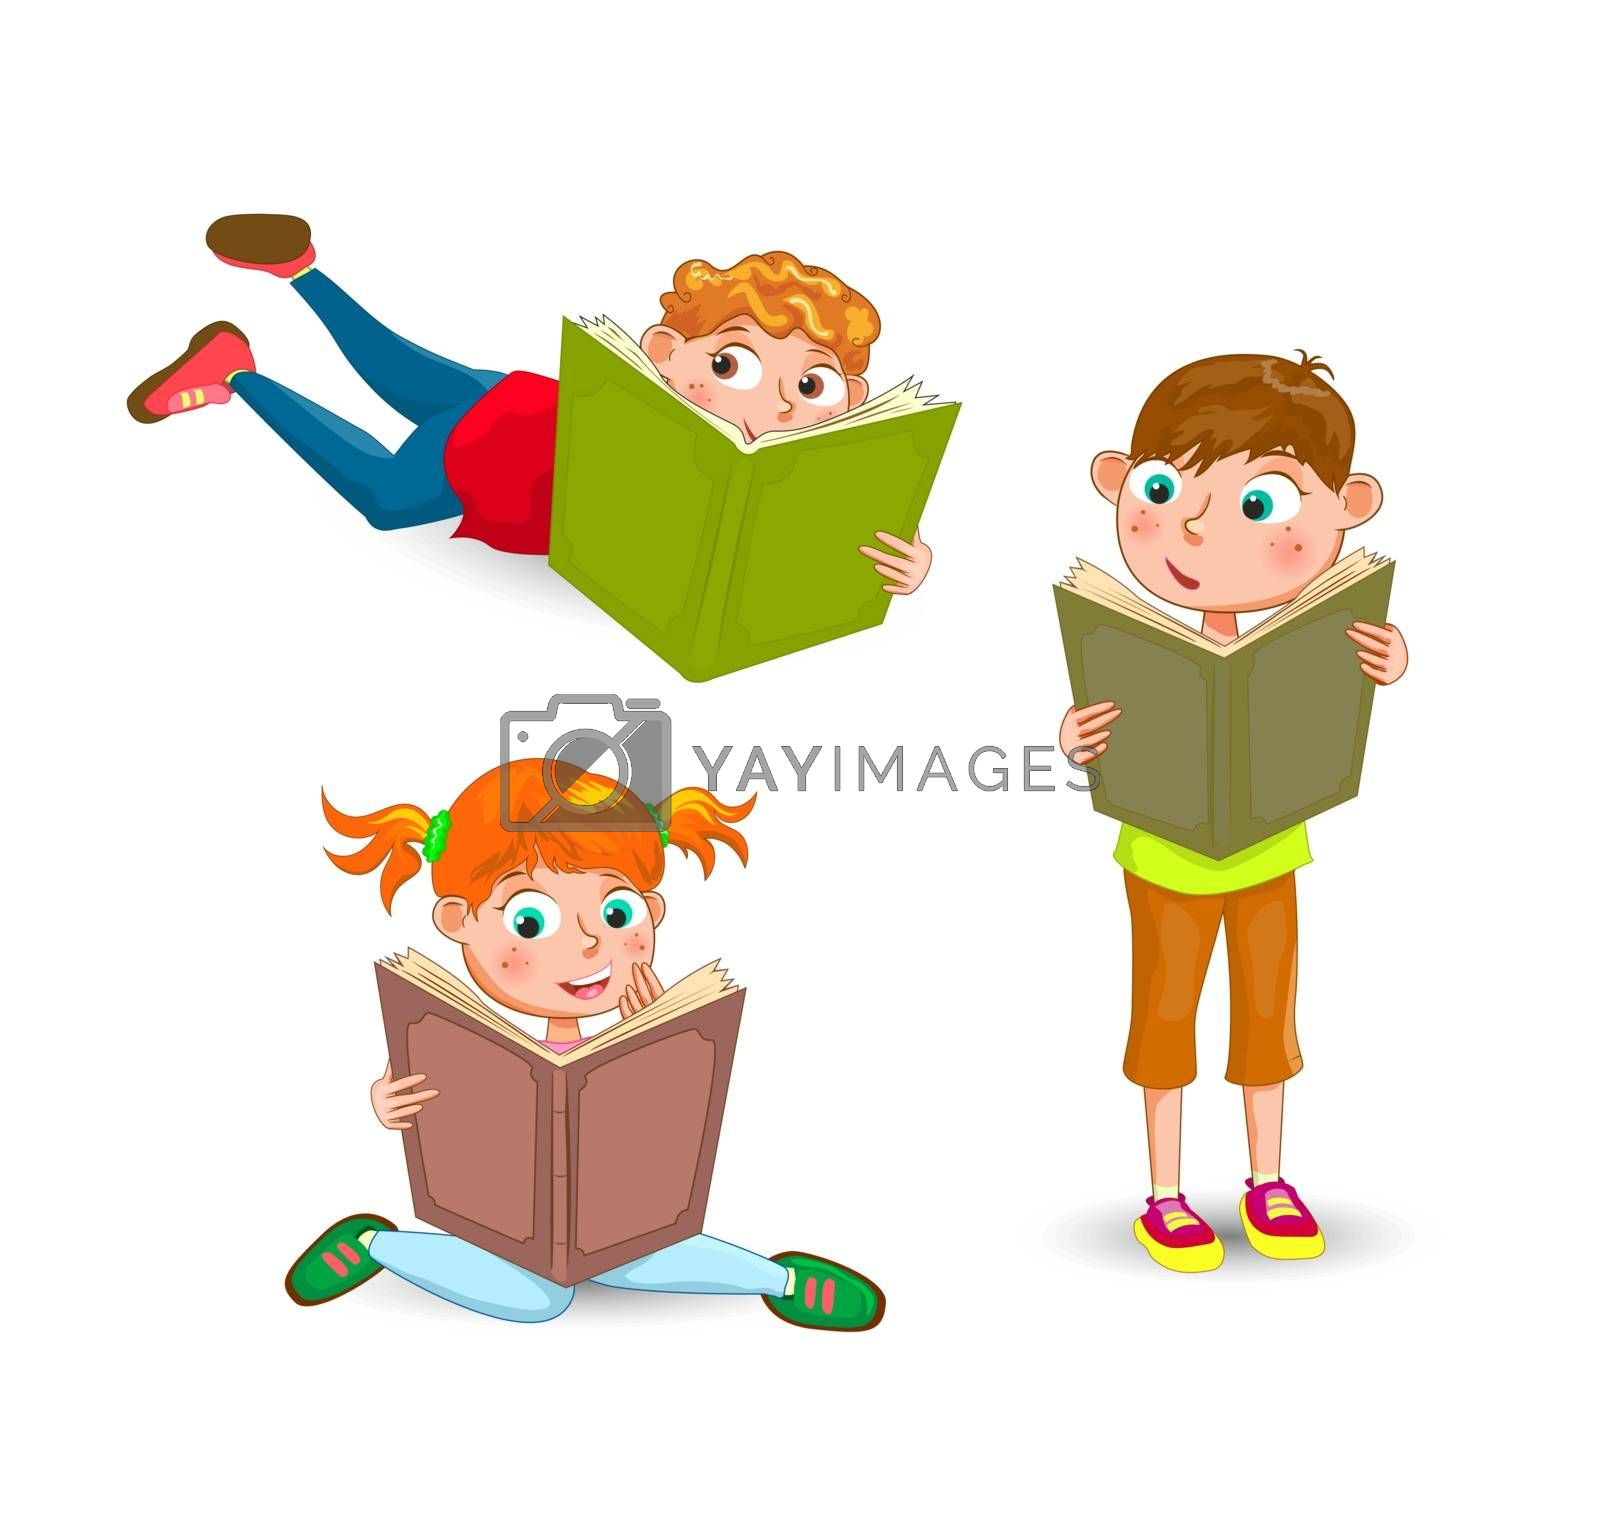 Children with books on a white background.